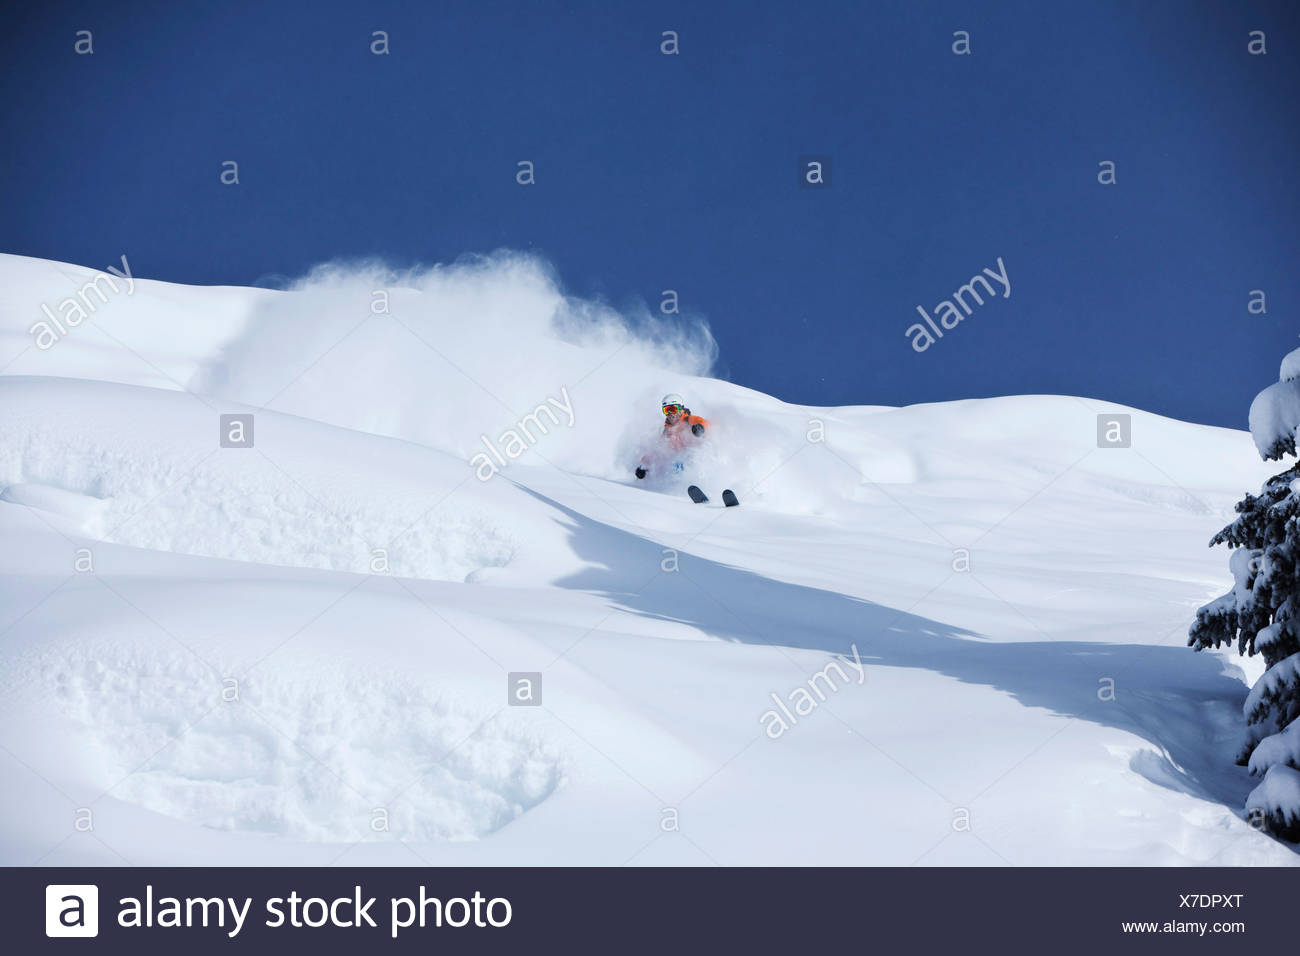 A athletic skier rips fresh deep powder turns in the backcountry on a sunny day in Colorado. - Stock Image